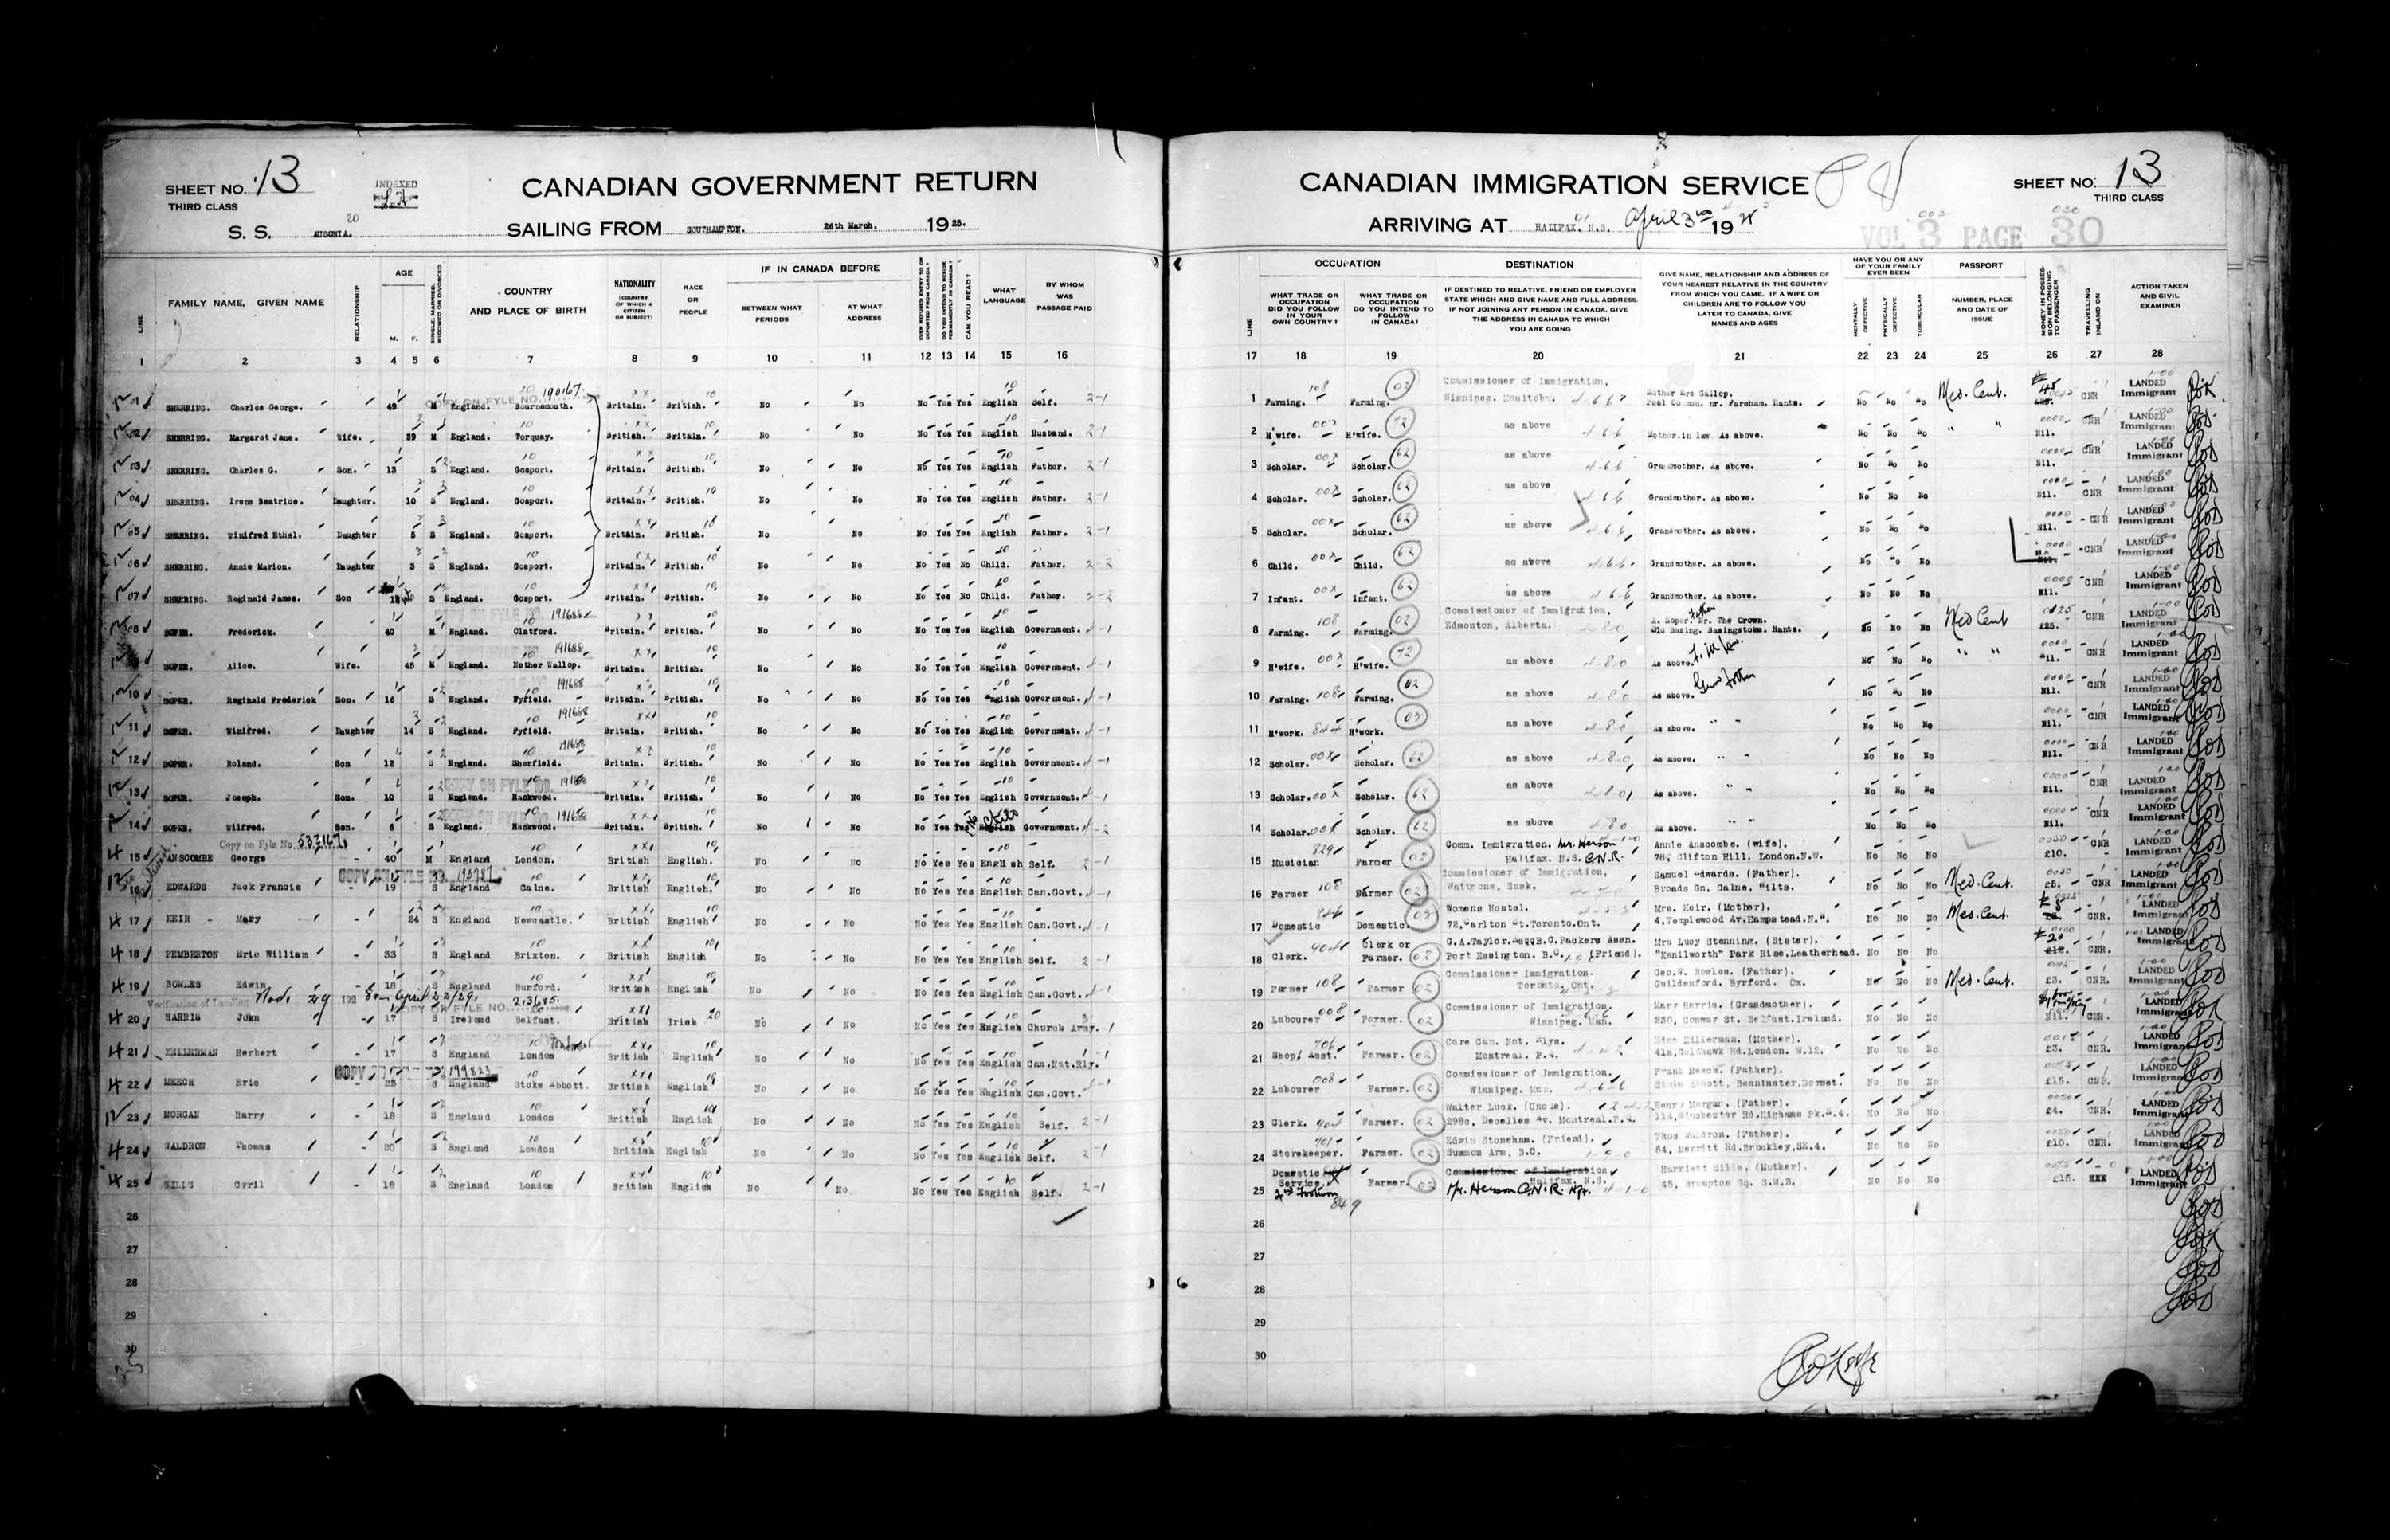 Title: Passenger Lists: Halifax (1925-1935) - Mikan Number: 134853 - Microform: t-14801